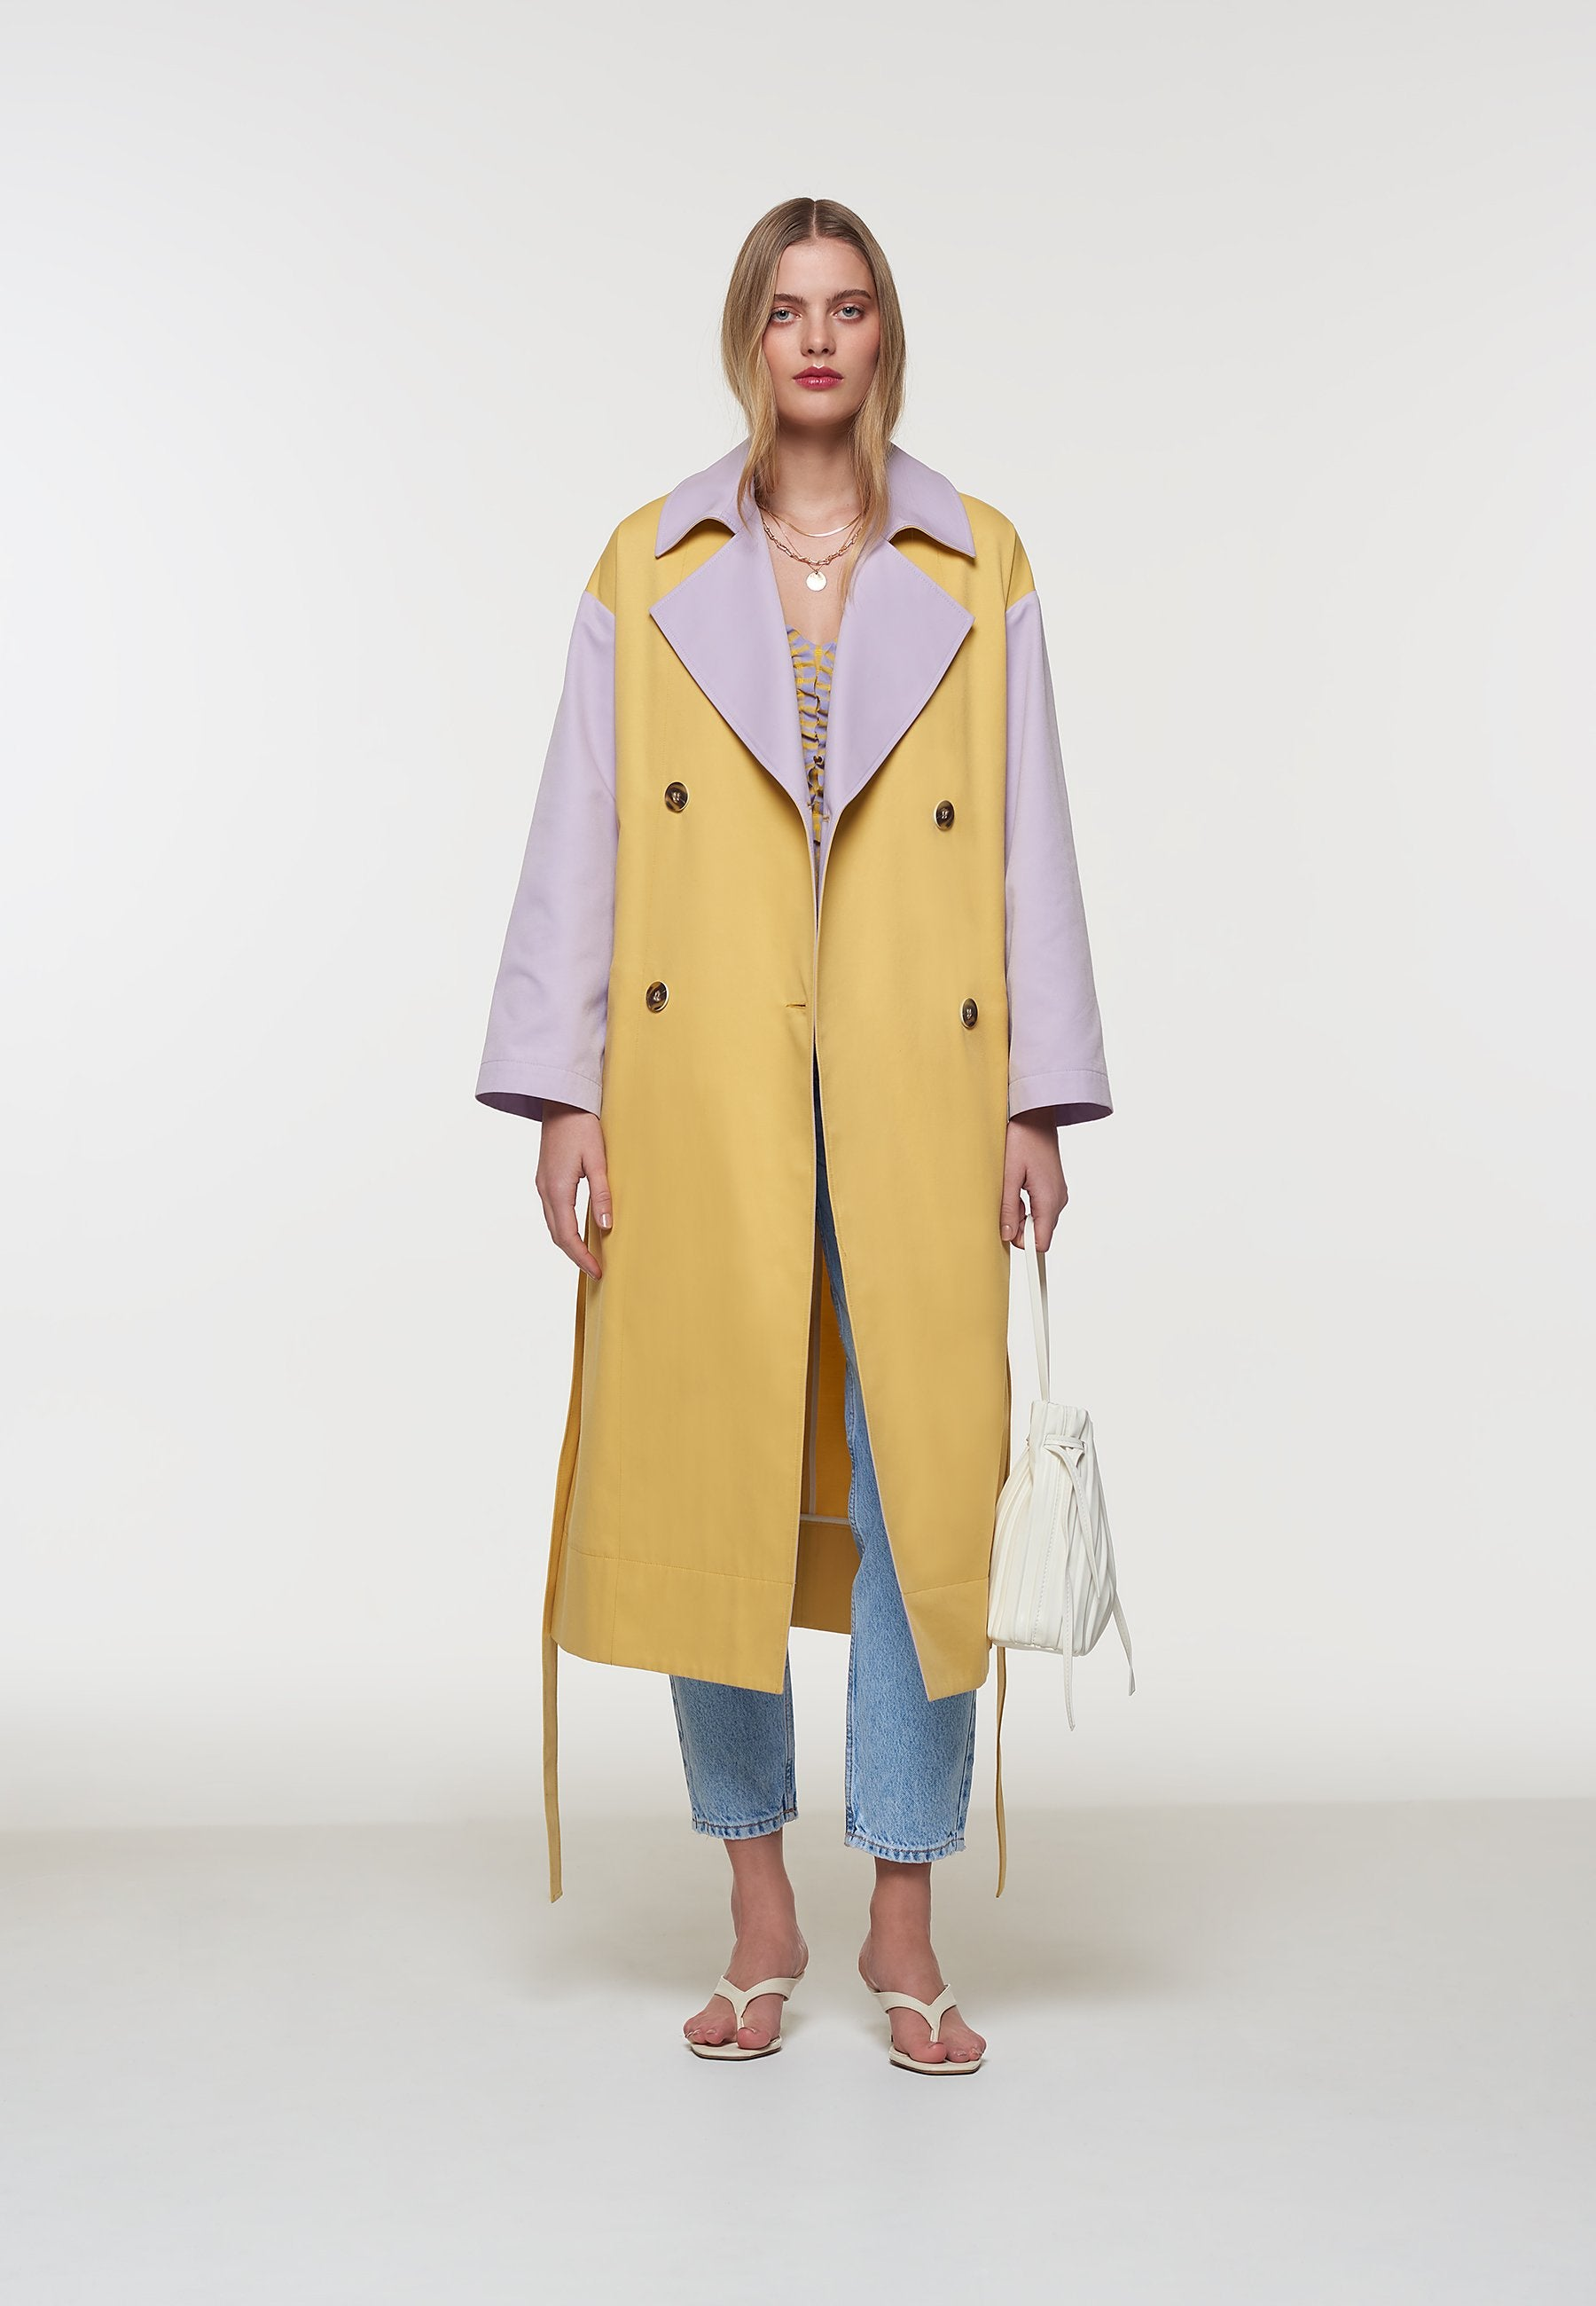 Palones Yellow and Lilac Pastel Colour Block Trench